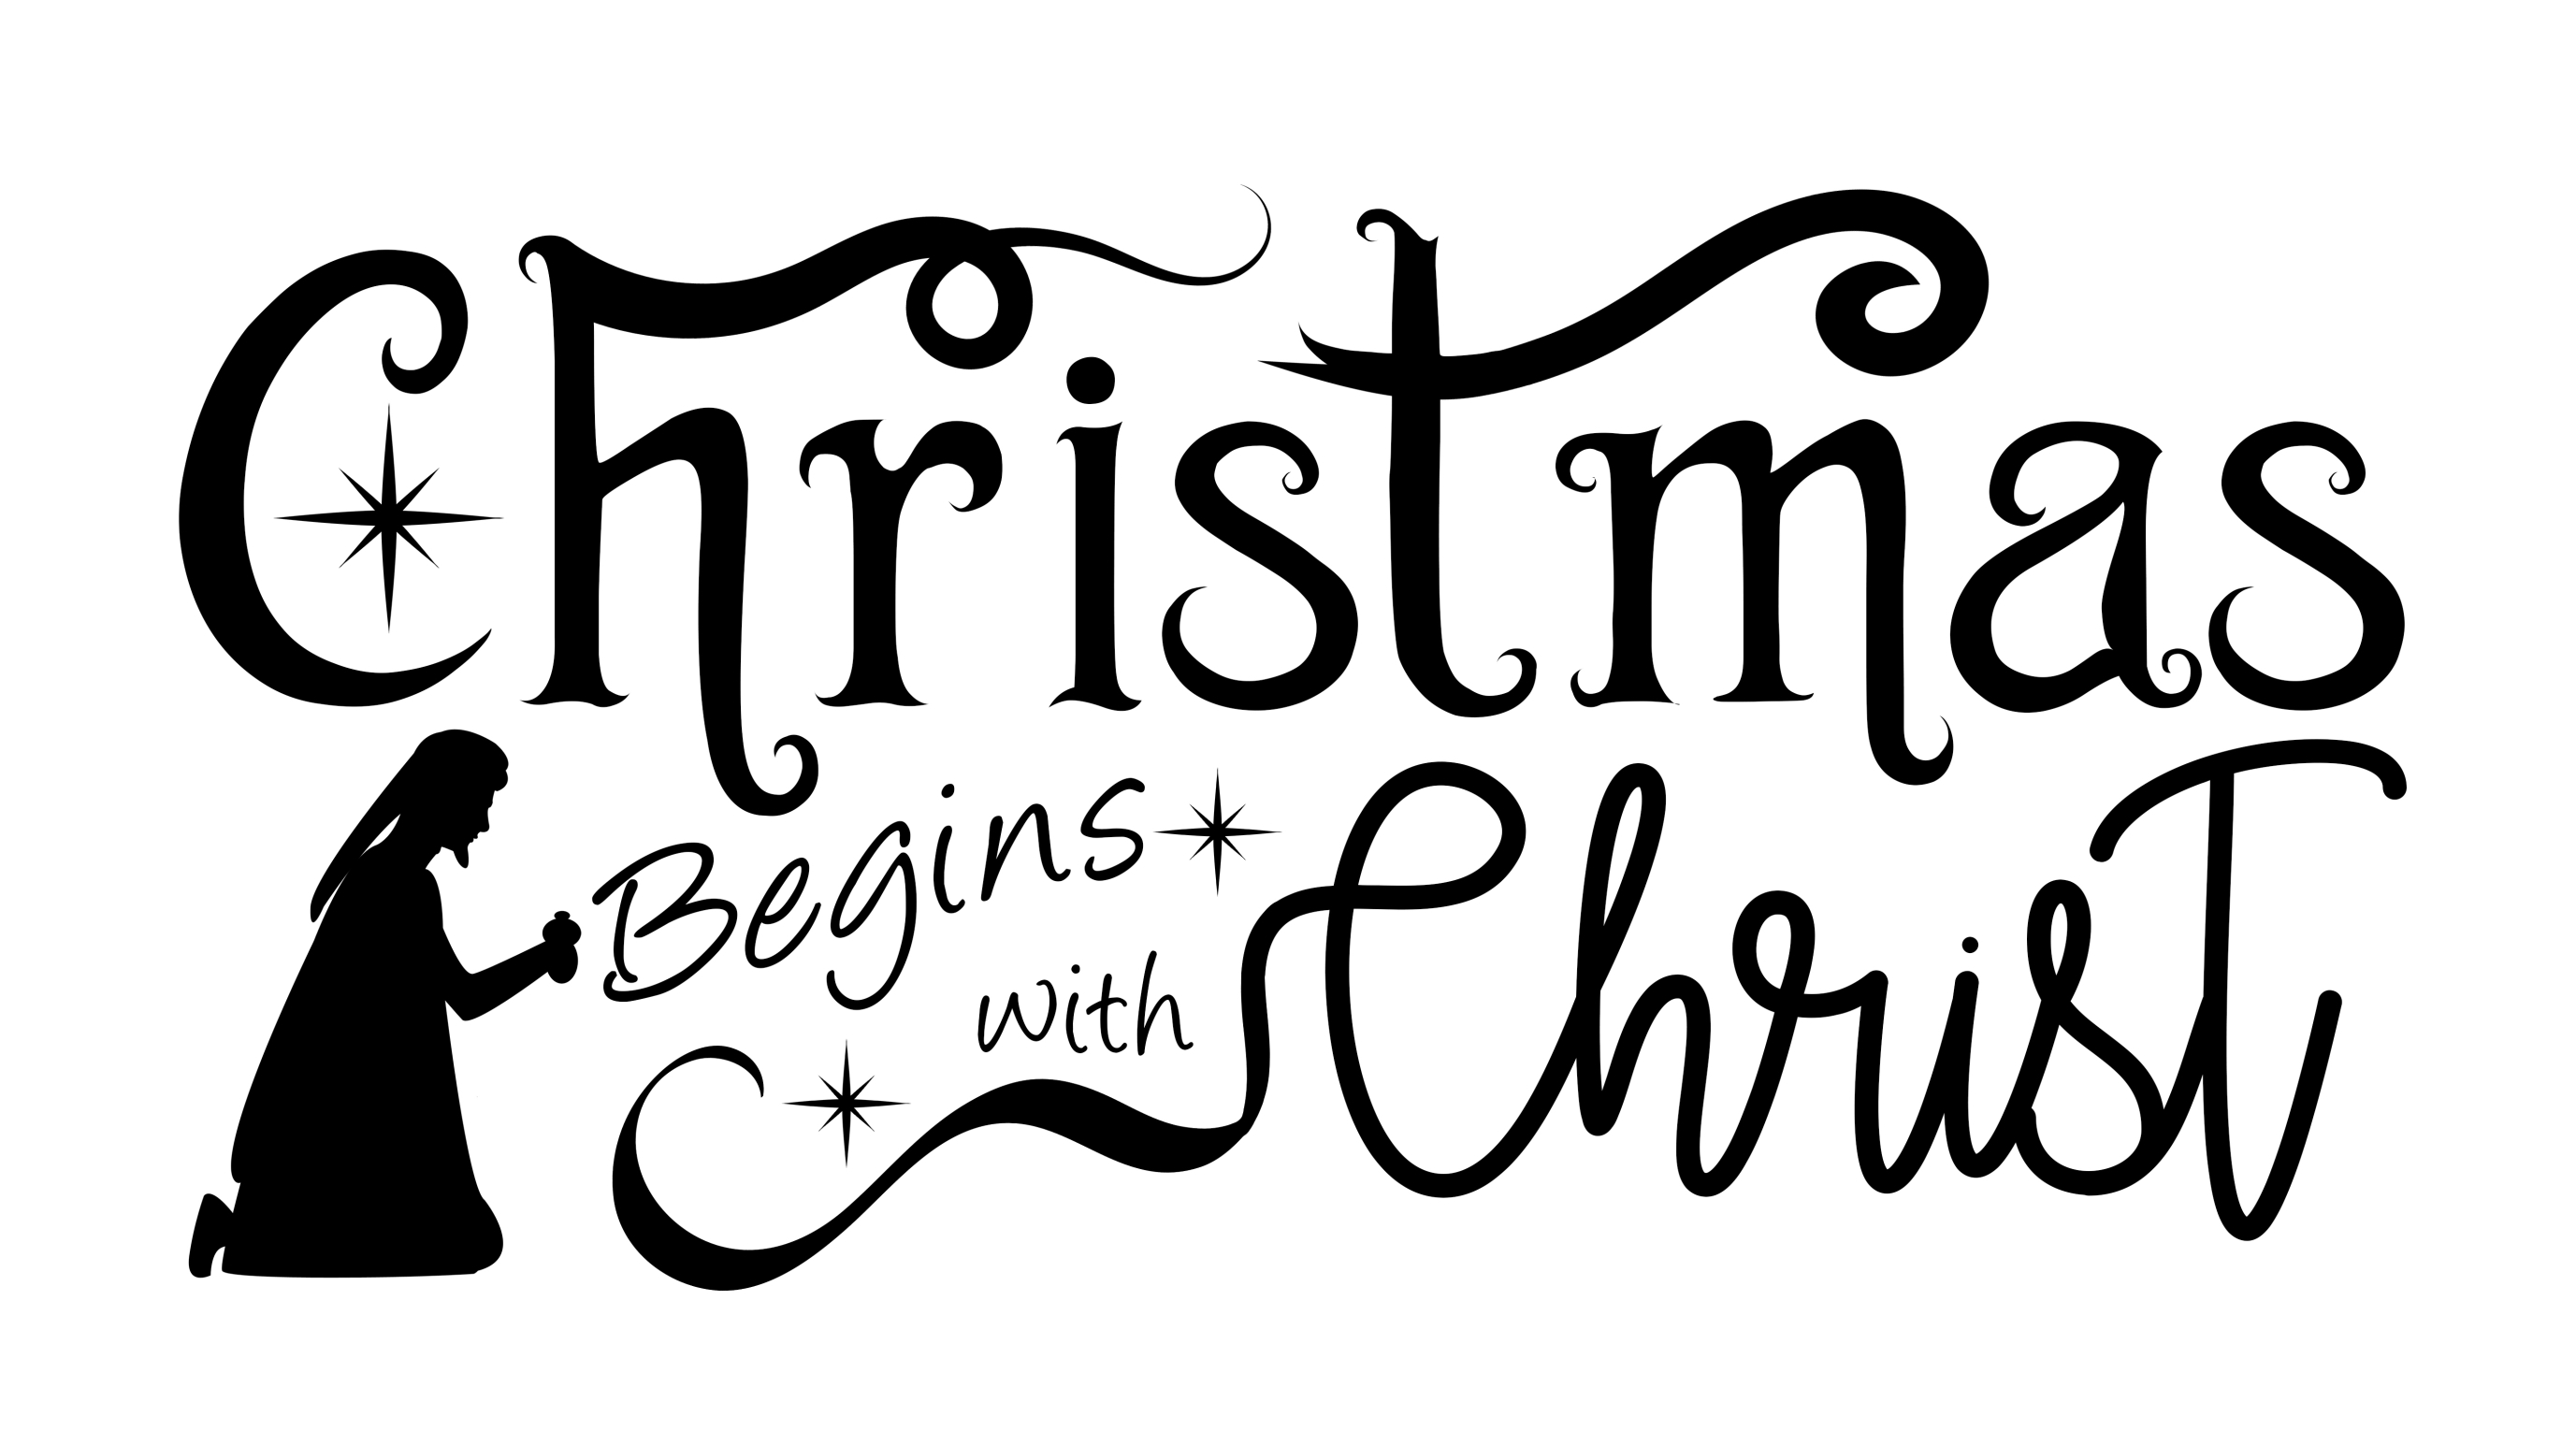 Religious Christmas Quotes, 13 Christmas Messages, SVG, JPG.